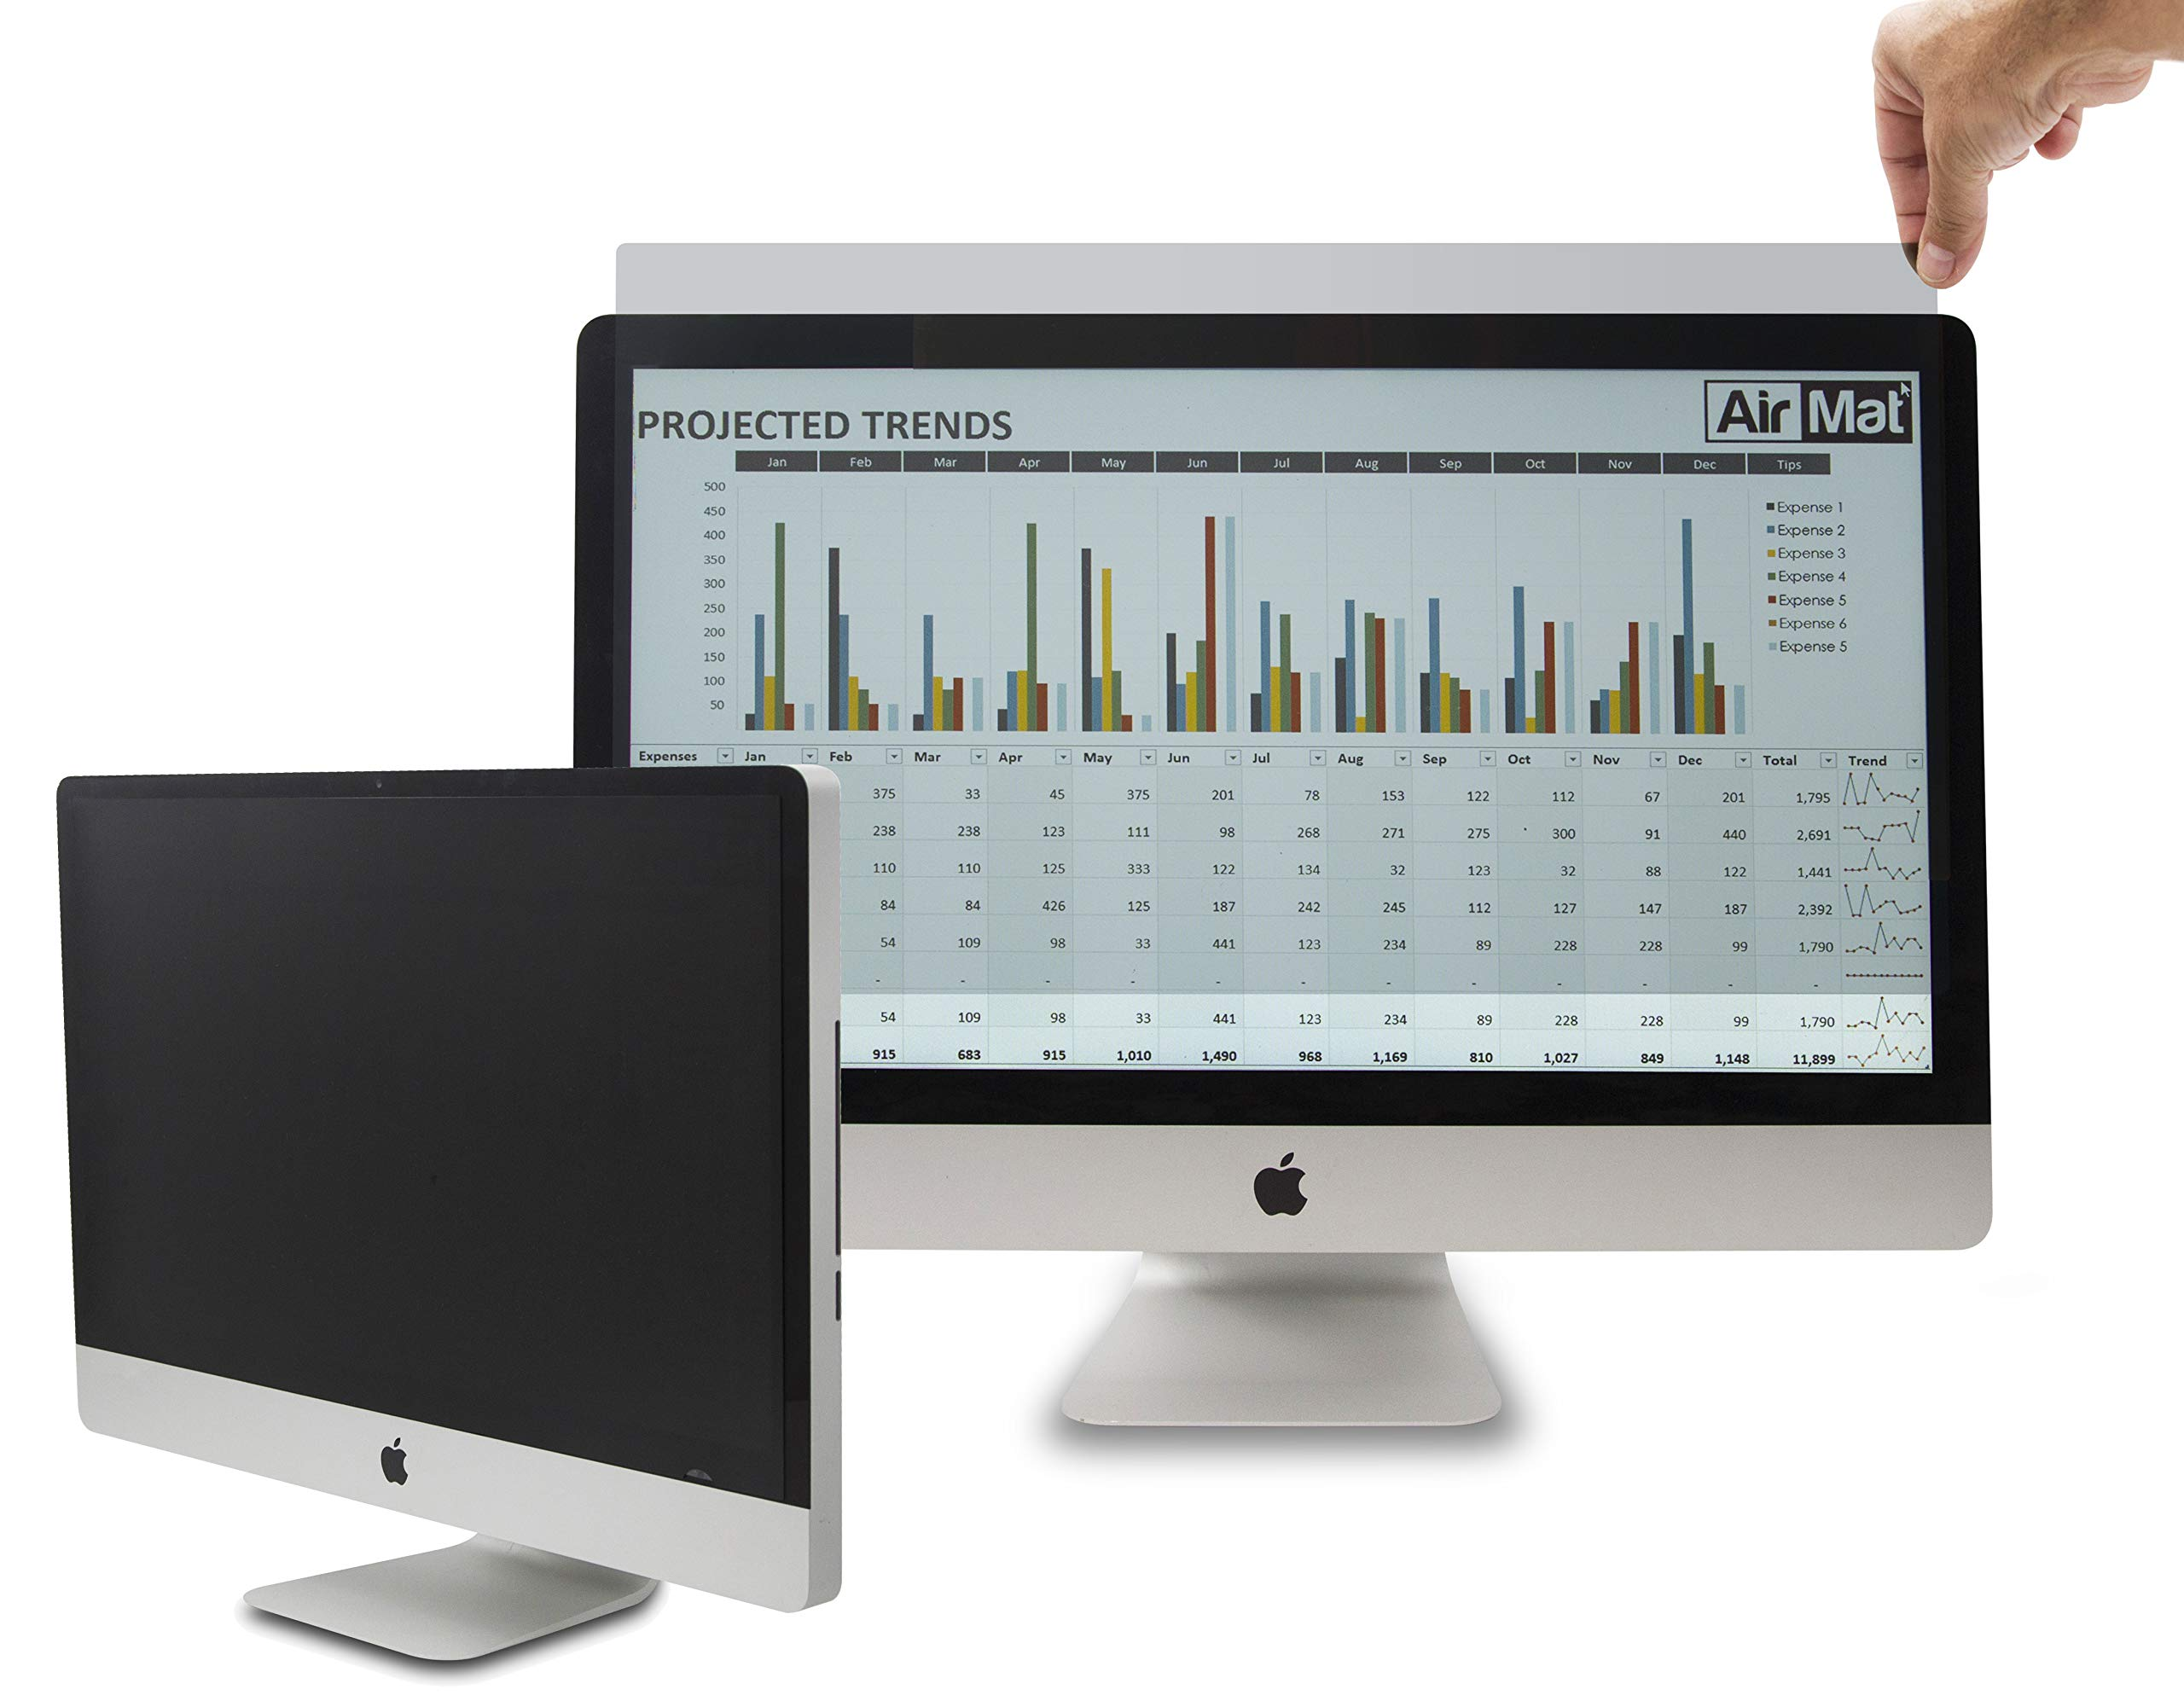 Computer Privacy Screen Filter for 27 inch Widescreen Display Monitors by AirMat. Anti Glare Protector Film for Data Confidentiality. (27'' Widescreen 16:9, Black)